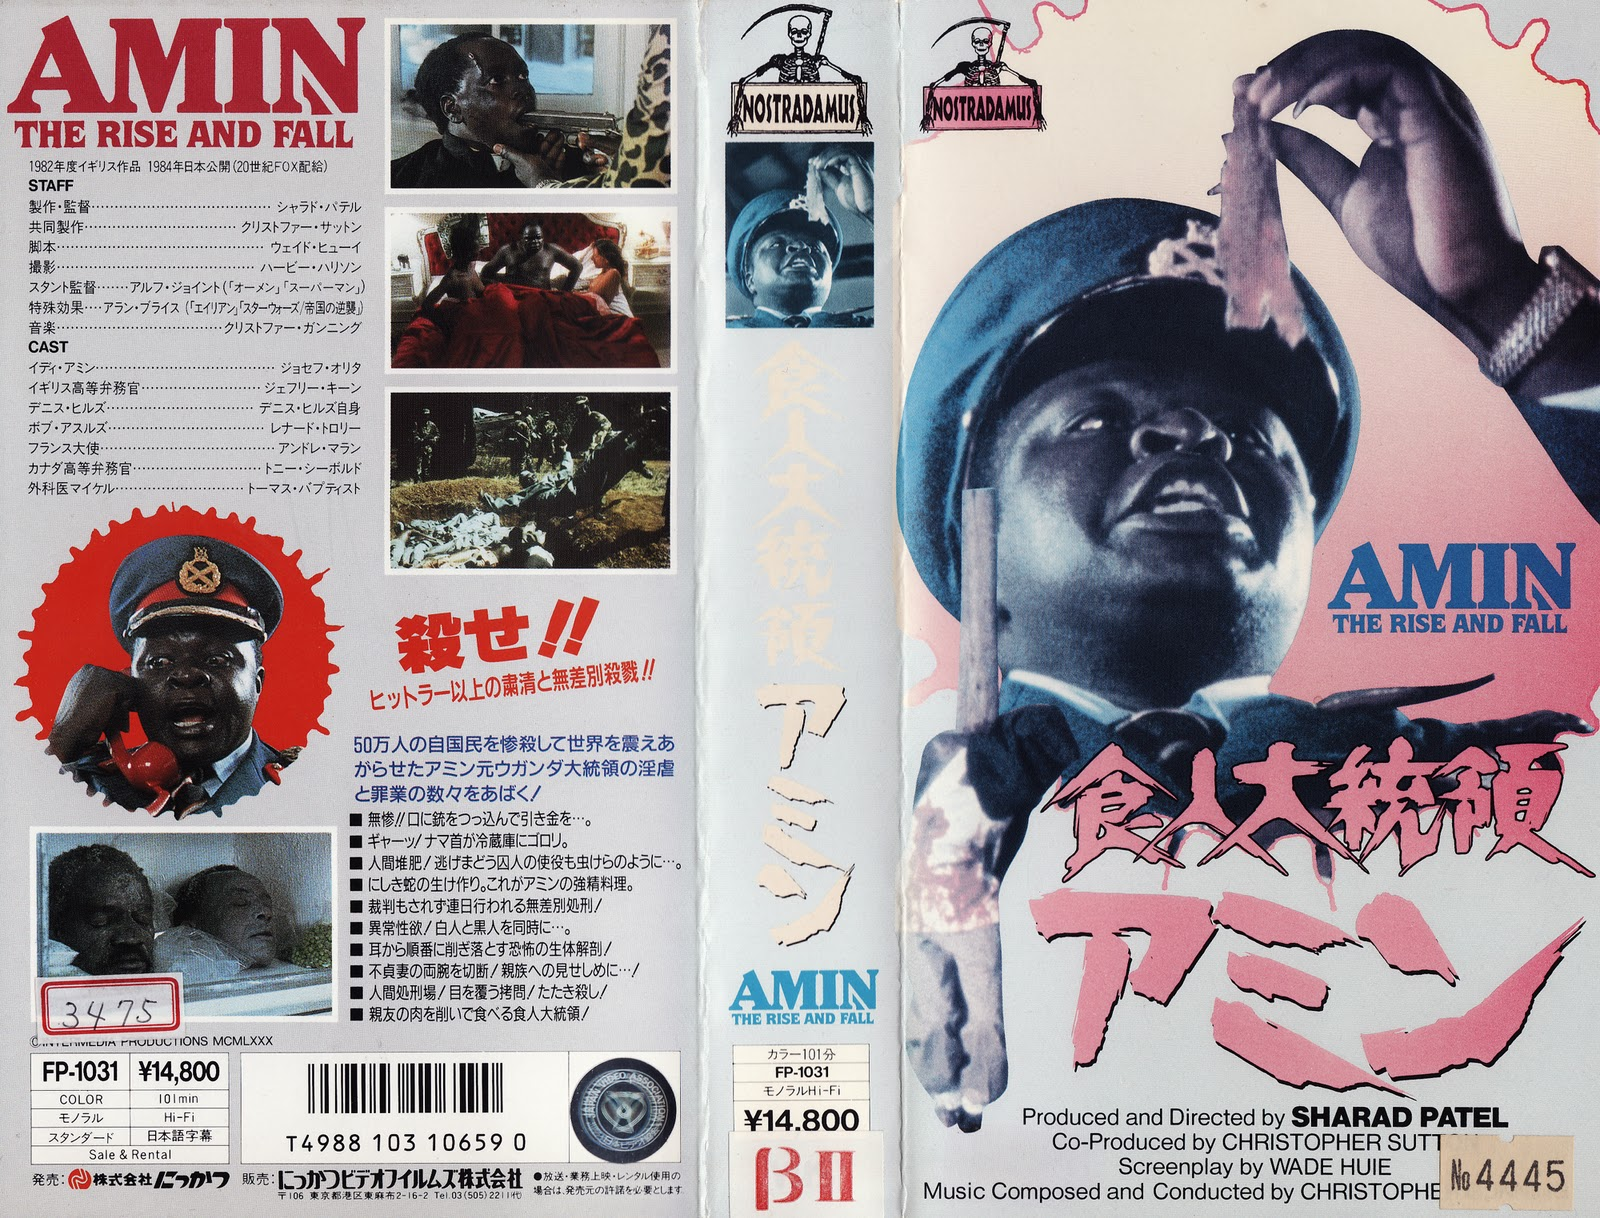 Amin: The Rise and Fall (1981) Japanese VHS Cover